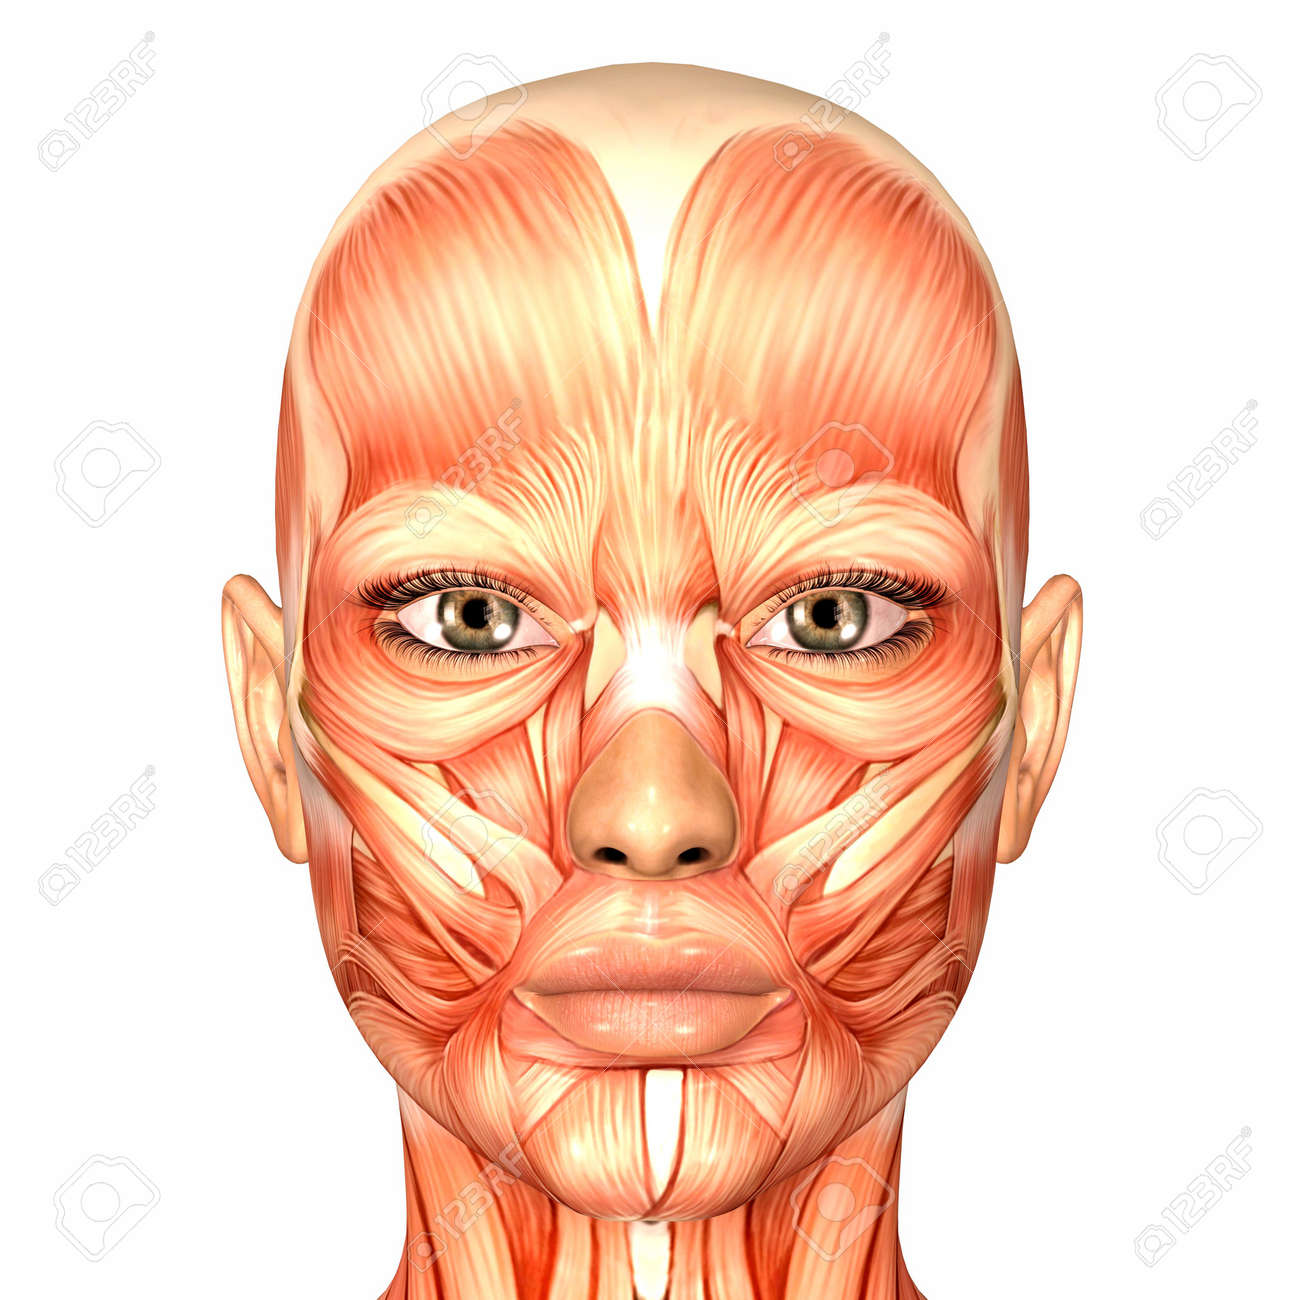 Illustration Of The Anatomy Of The Female Human Face Isolated